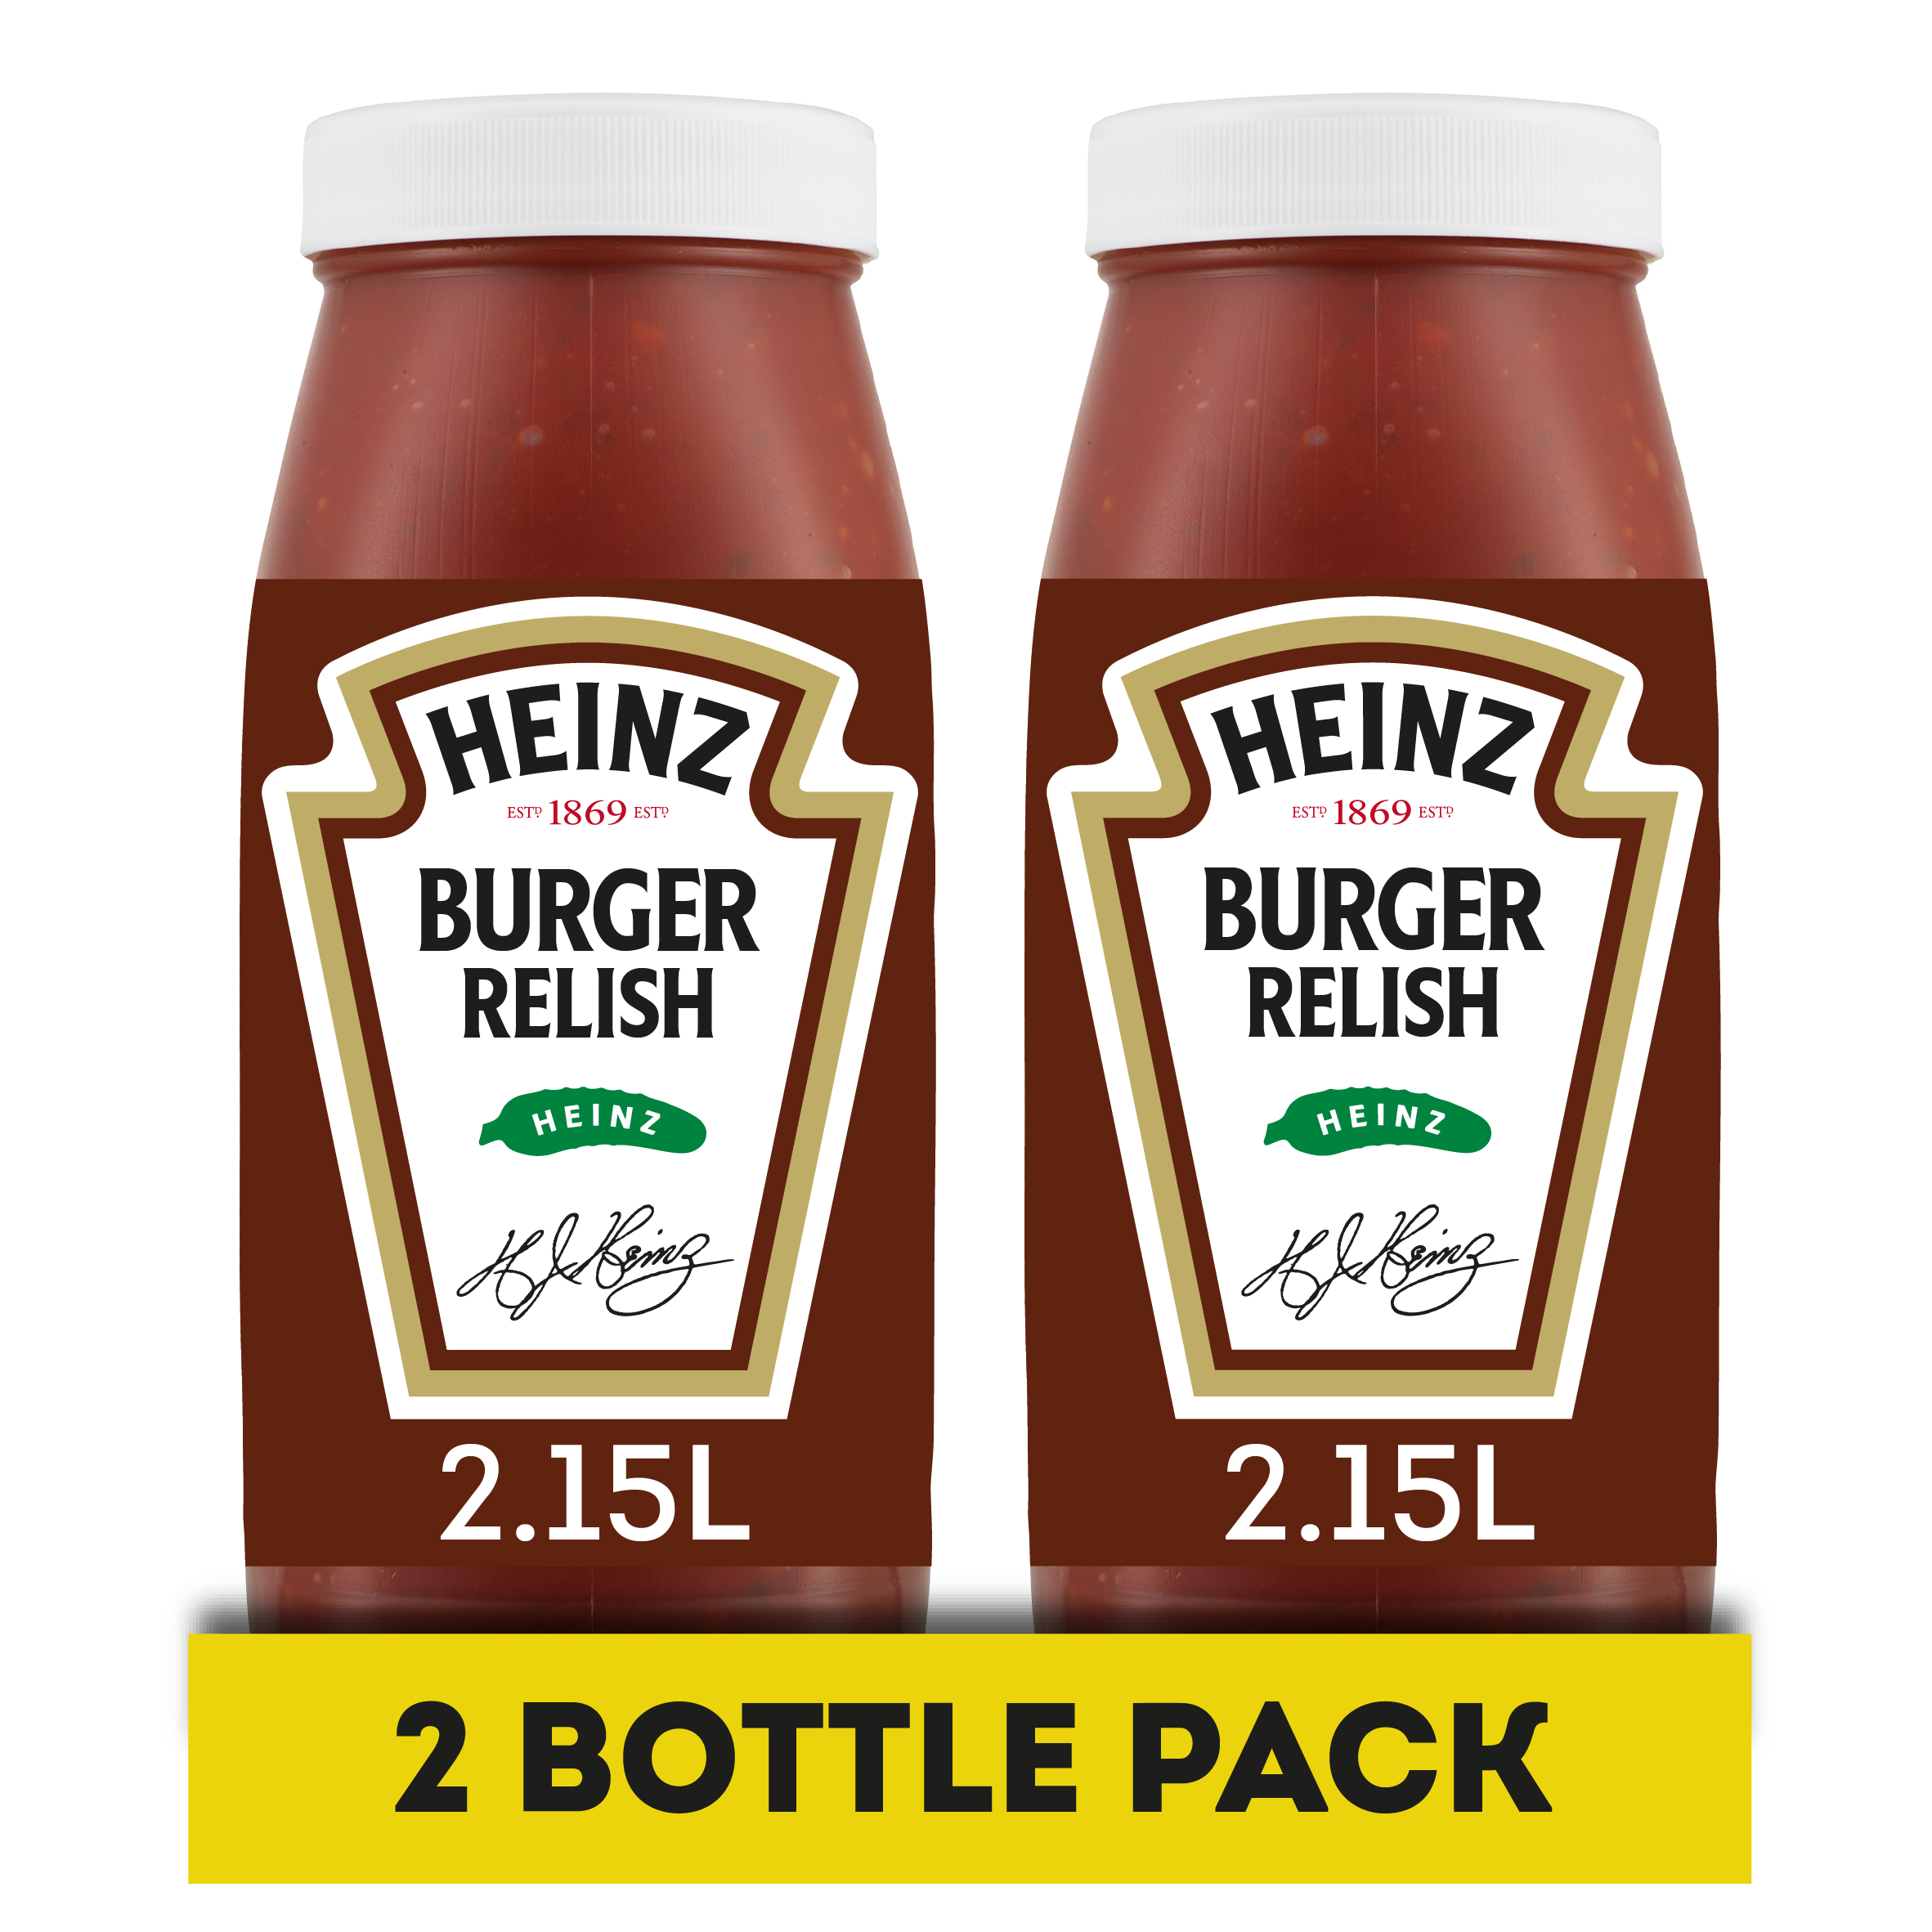 Heinz Burger Relish 2.15L Jars